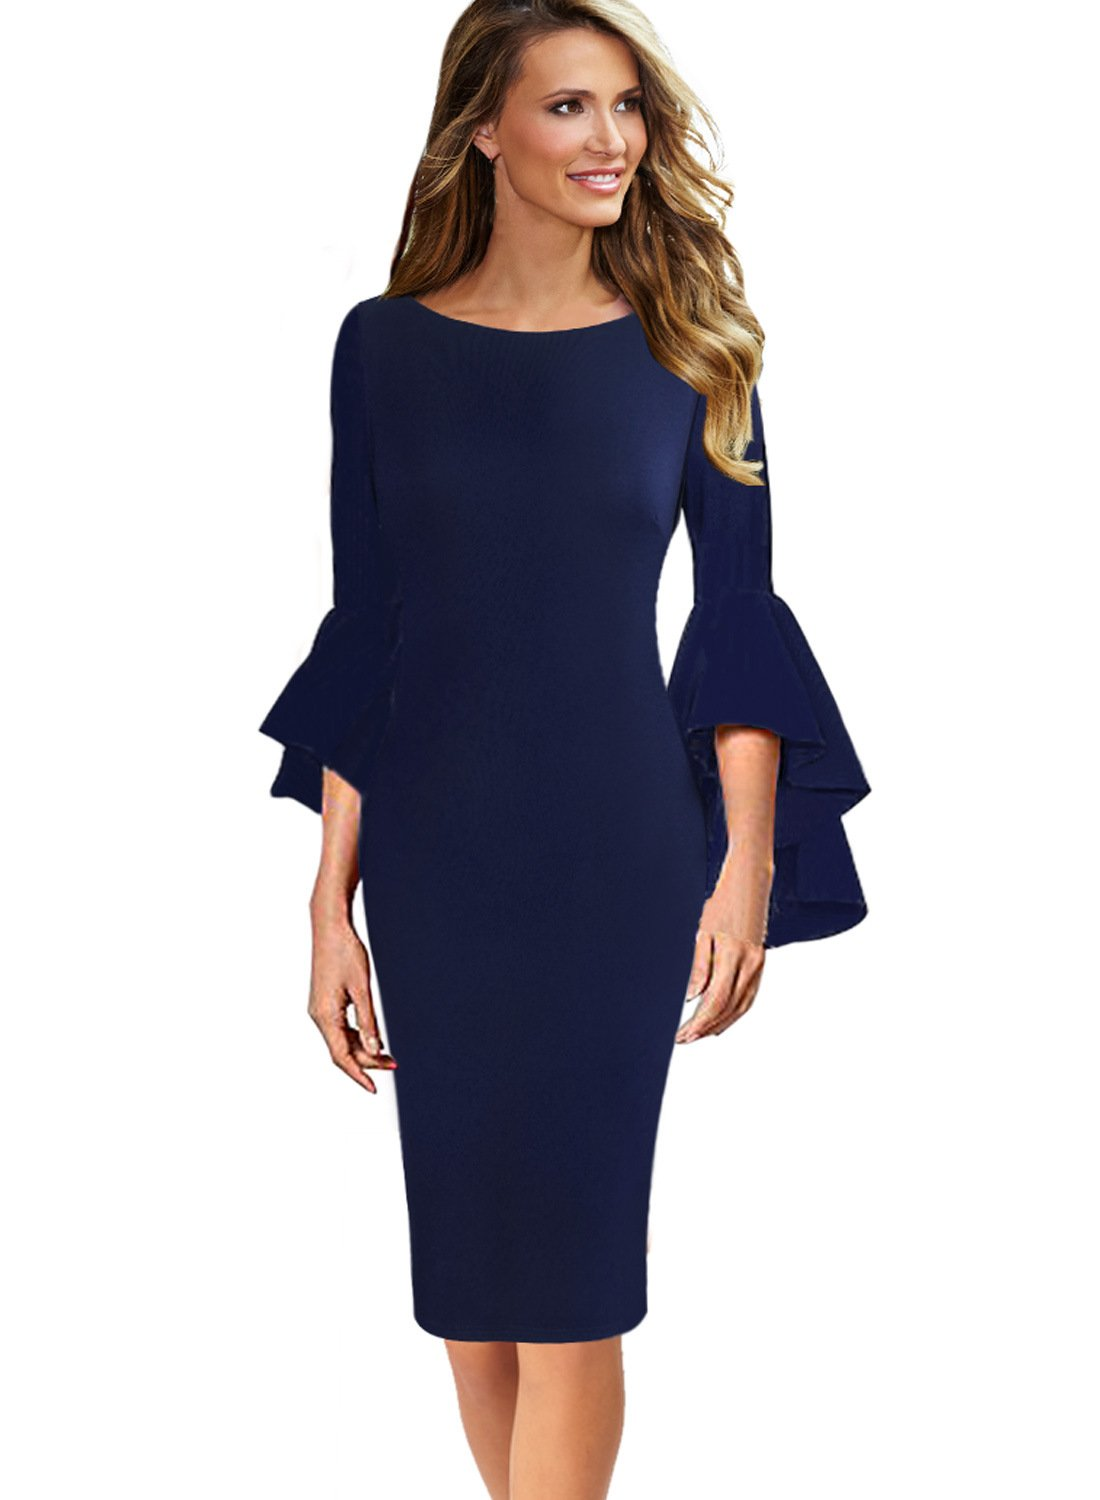 Party Dresses - Womens Ruffle Bell Sleeves Business Cocktail Party Bodycon Sheath Dress